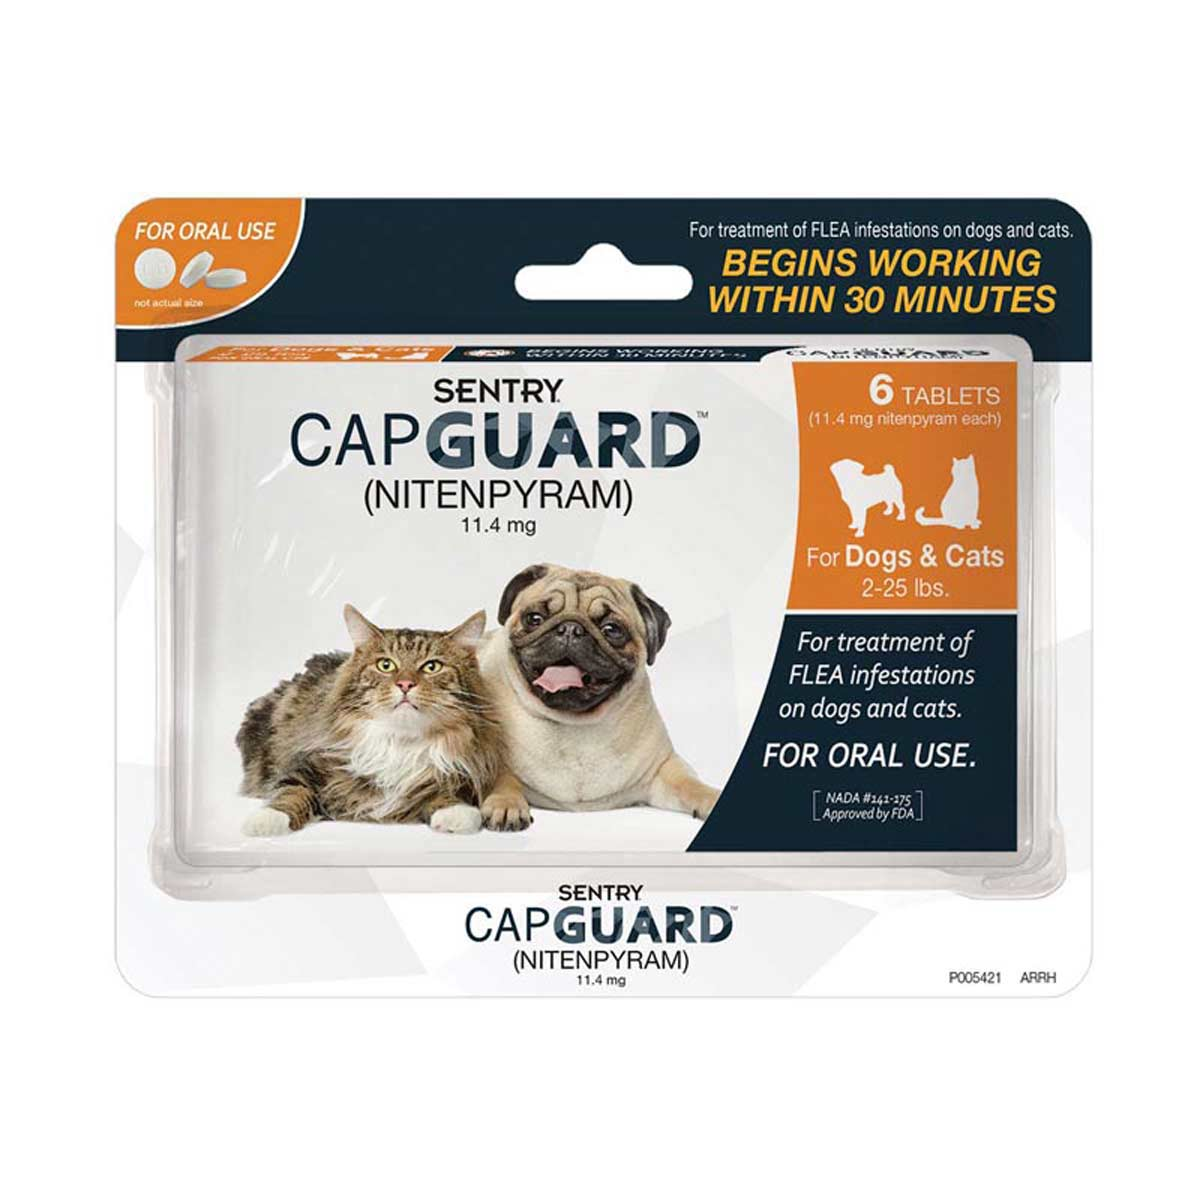 6 Count Sentry Capguard Flea Tablets for Dogs and Cats 2-25 lbs